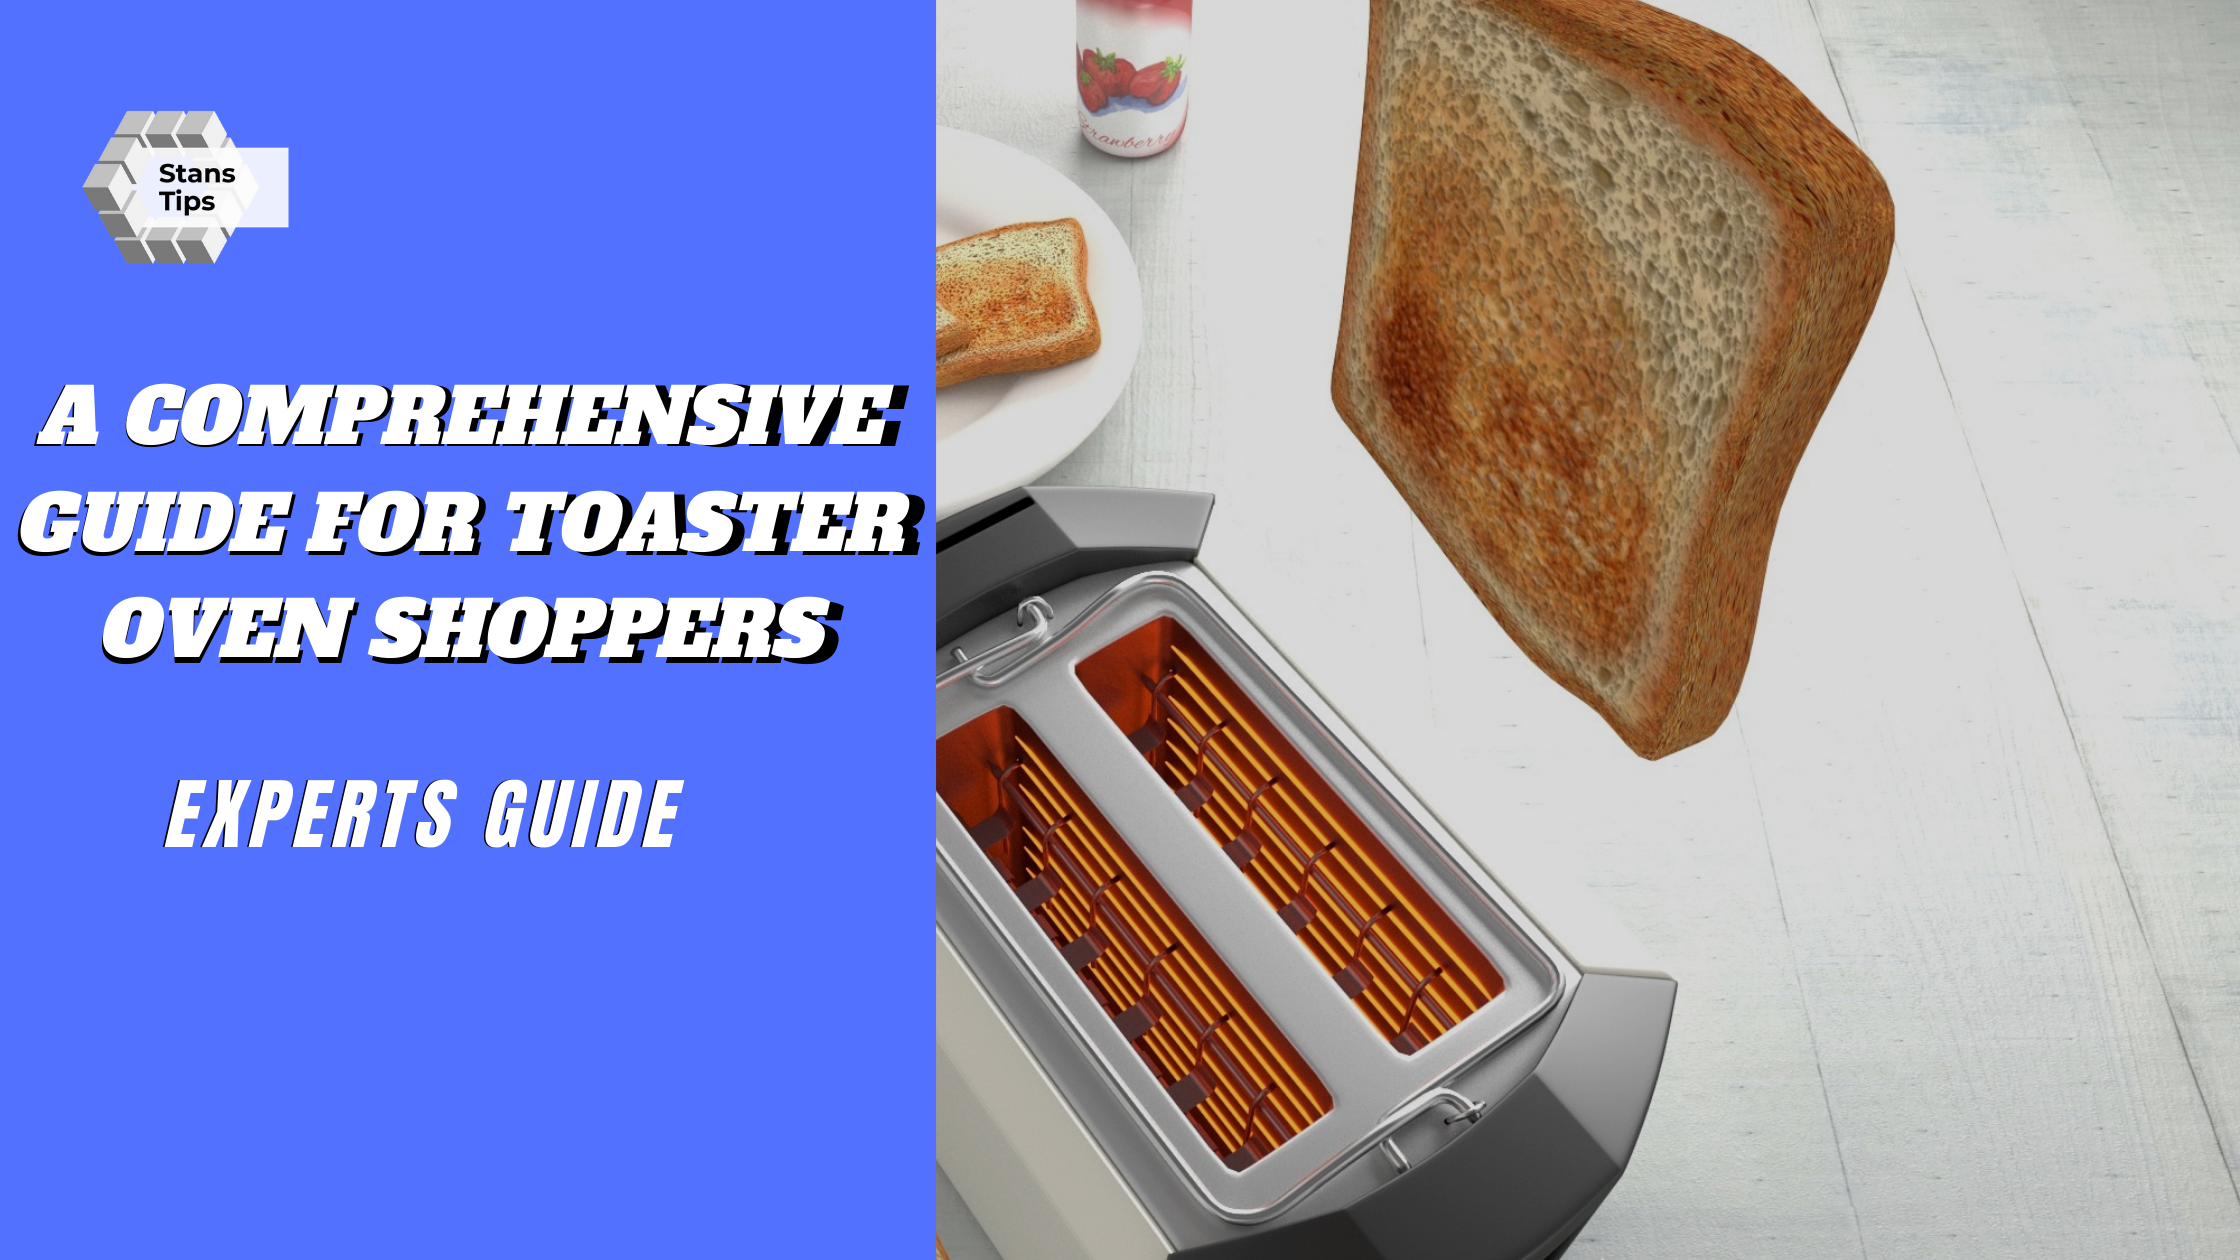 A comprehensive guide for toaster oven shoppers